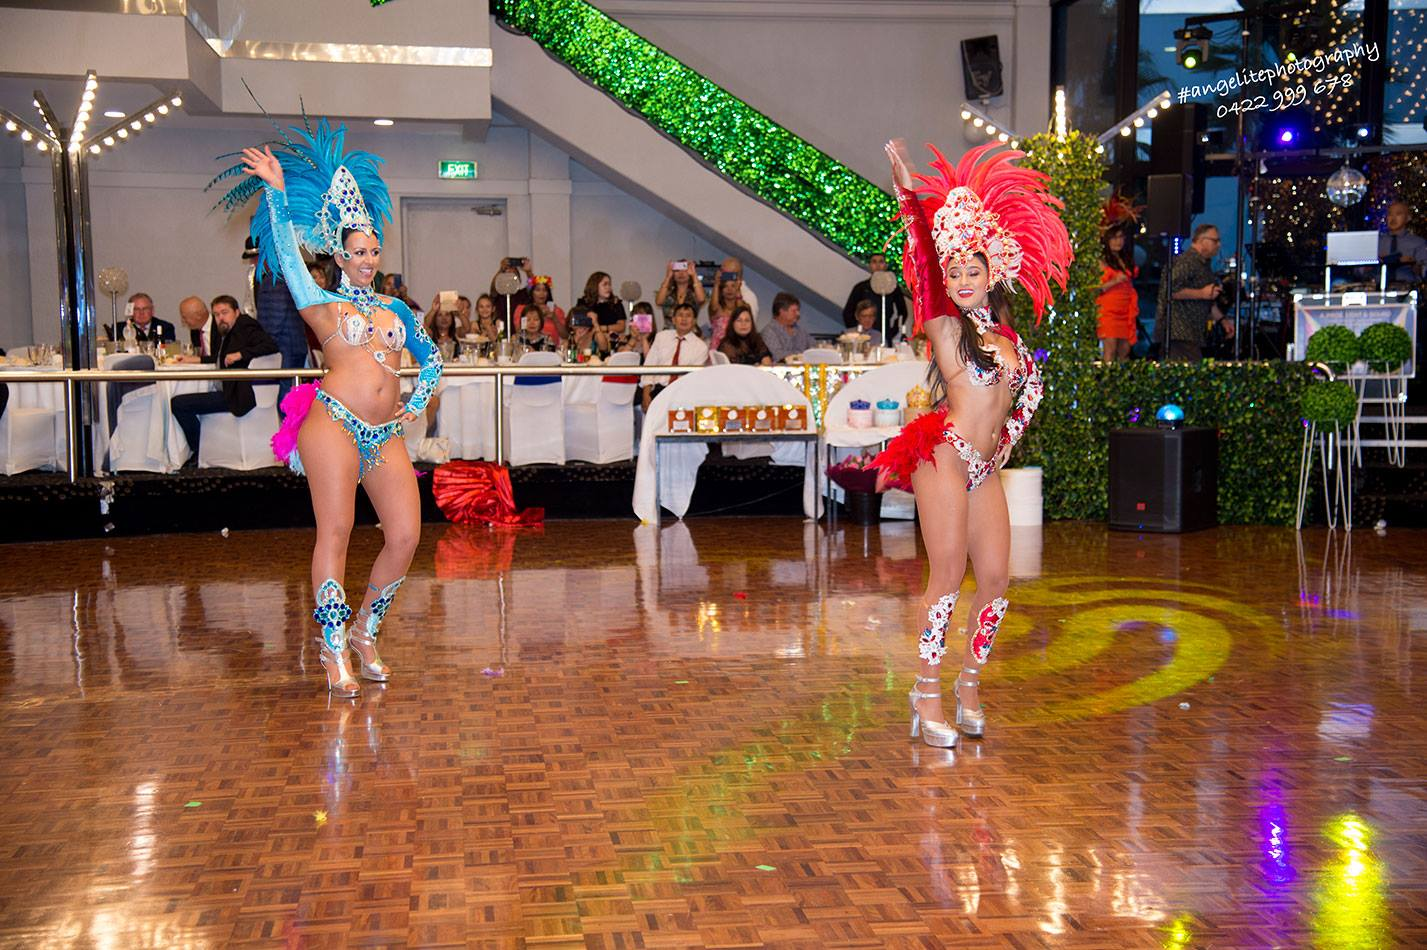 smad-share-me-a-dream-rio-2019-nonprofit-melbourne-dinner-dance-melbourne-australia-chrity-ball.jpg